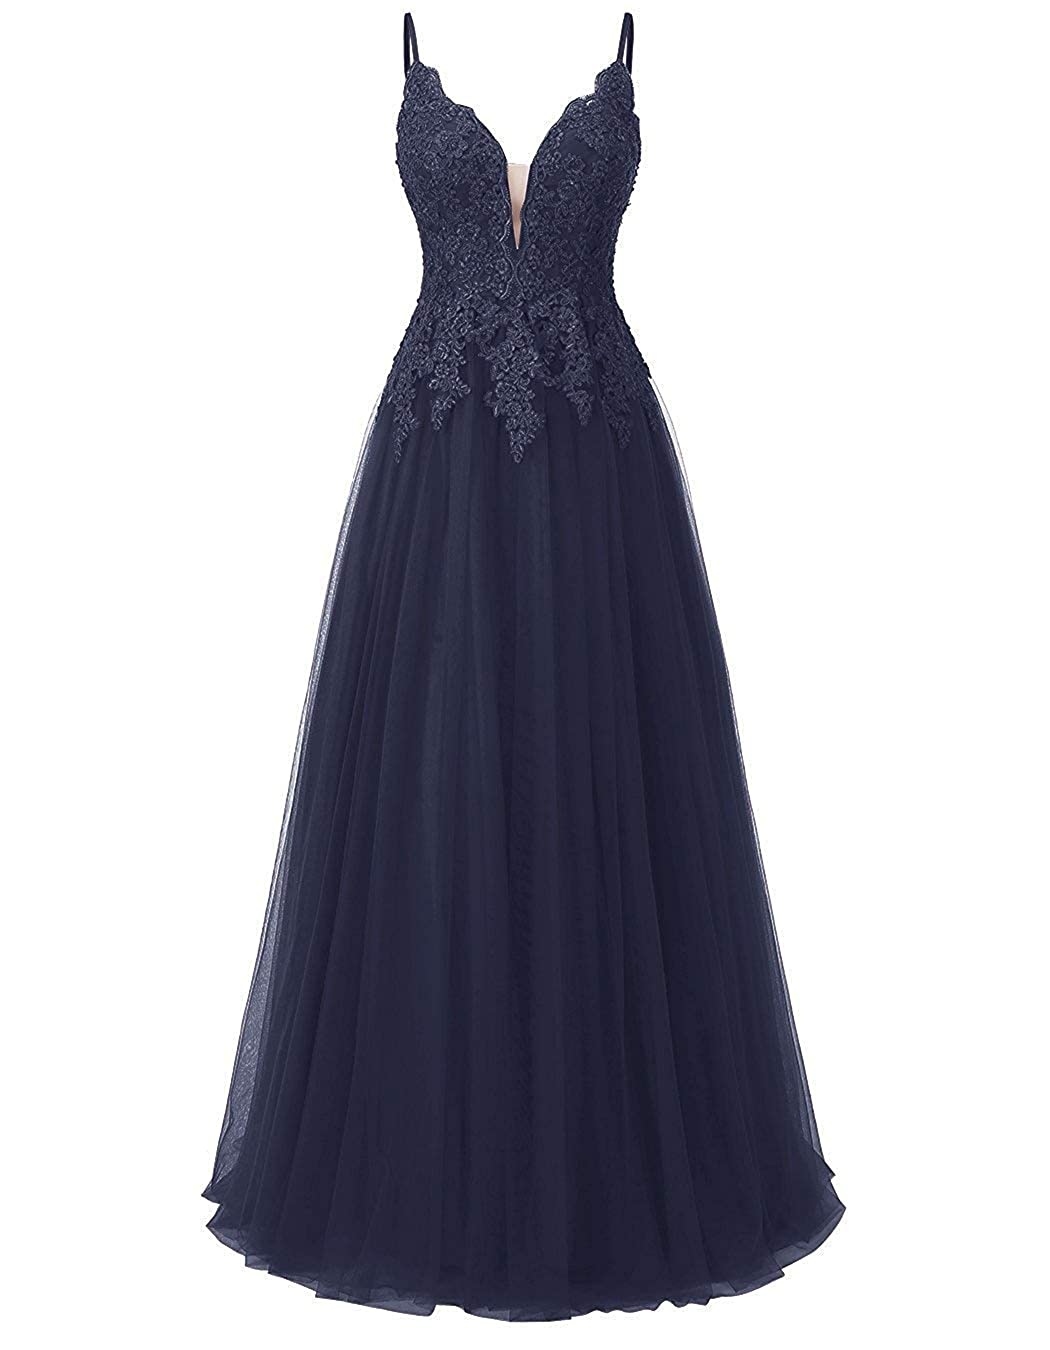 Navy bluee JAEDEN Prom Dresses Long Evening Gowns Tulle Evening Dresses for Party Lace Bridesmaid Dress Long Party Dress